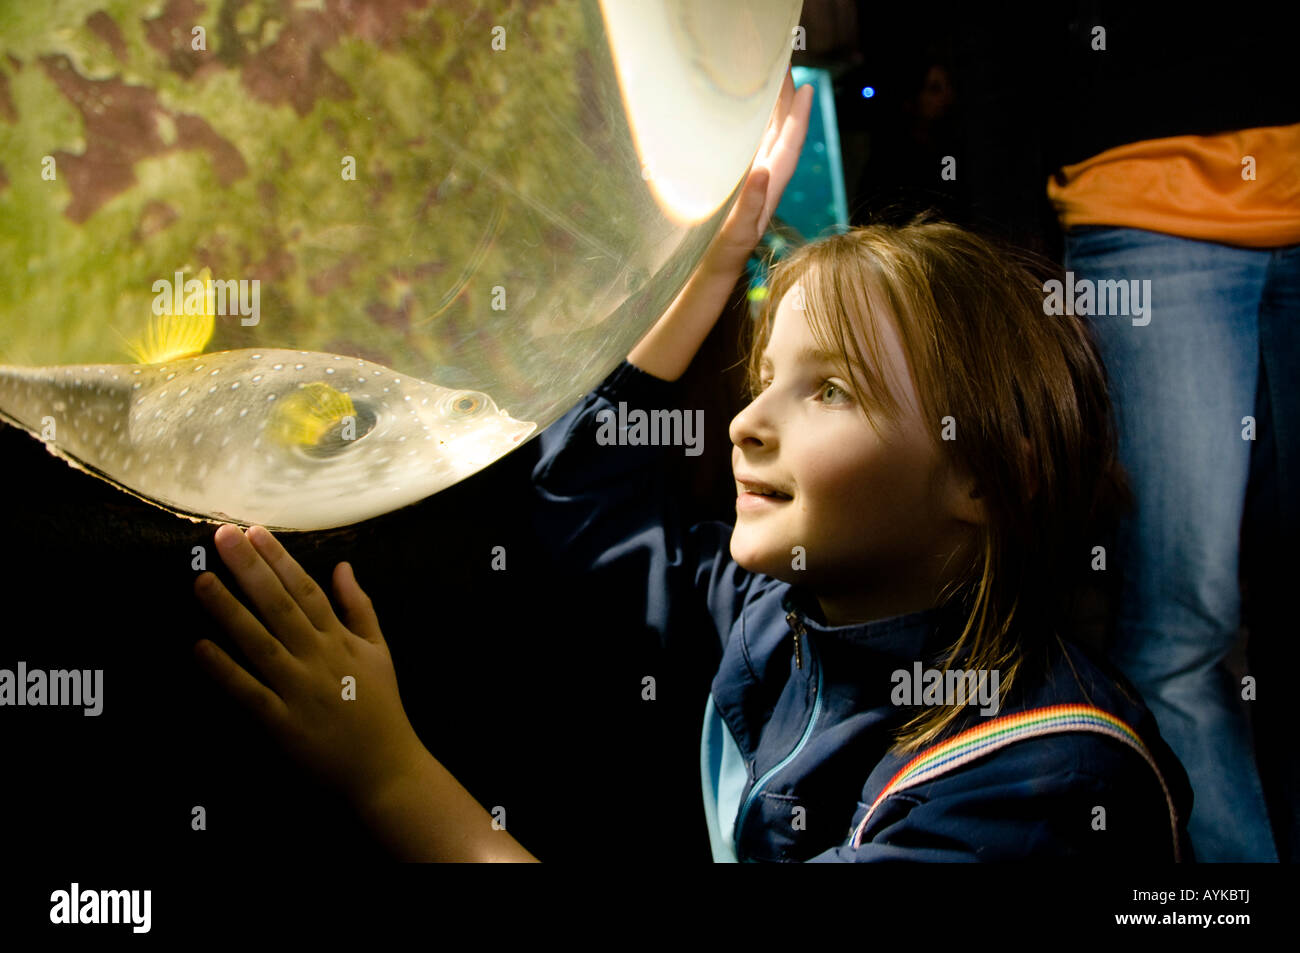 Fish aquarium kidderminster - Stock Photo Young Girl Entranced By A Magnified Tropical Fish In The Aquarium At West Midlands Safari Park Bewdley Near Kidderminster